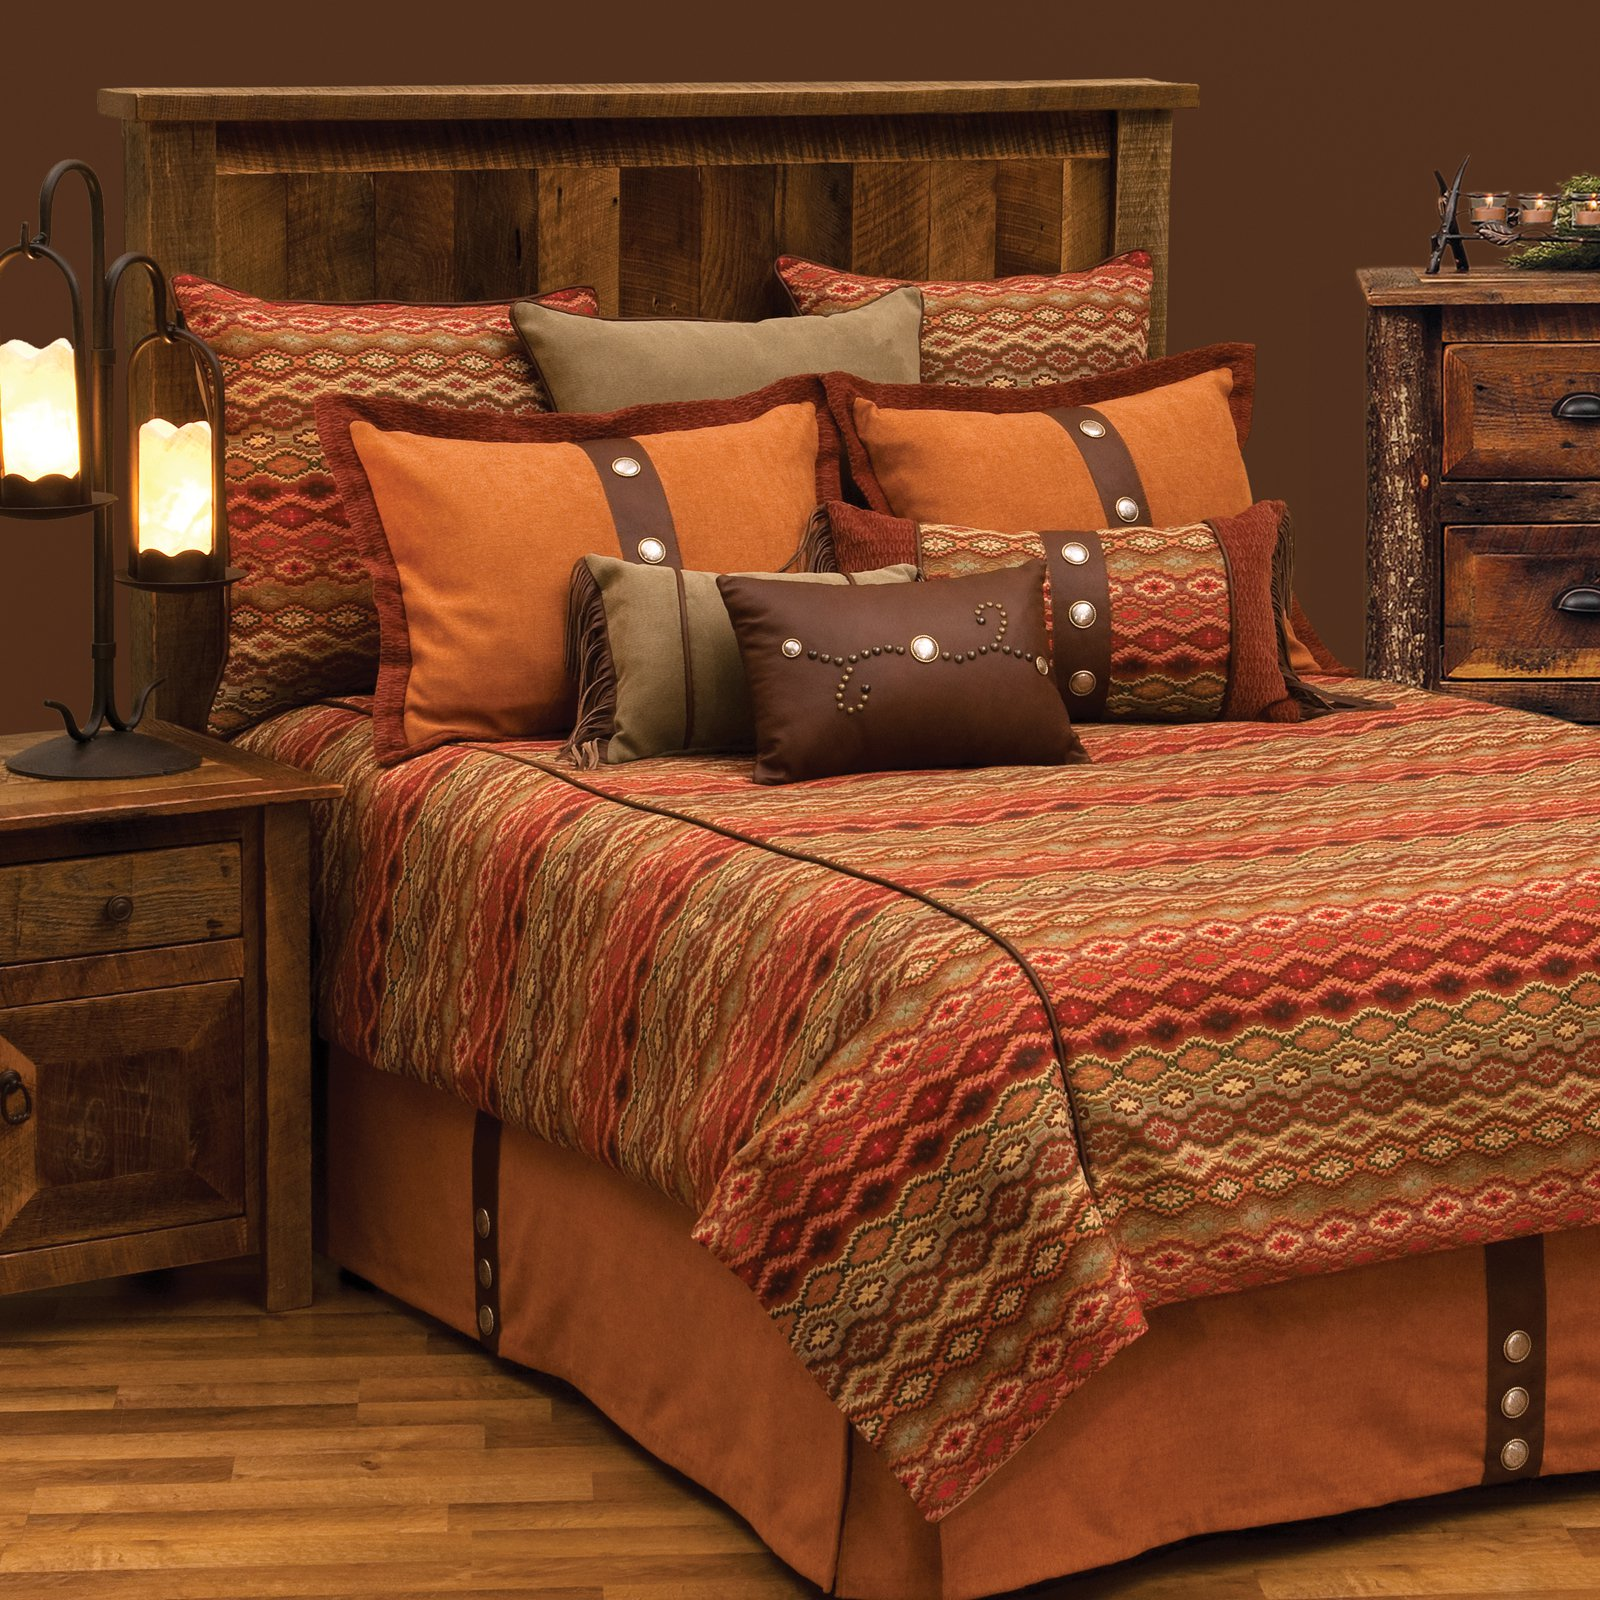 Marquise IV Bedding Set by Wooded River